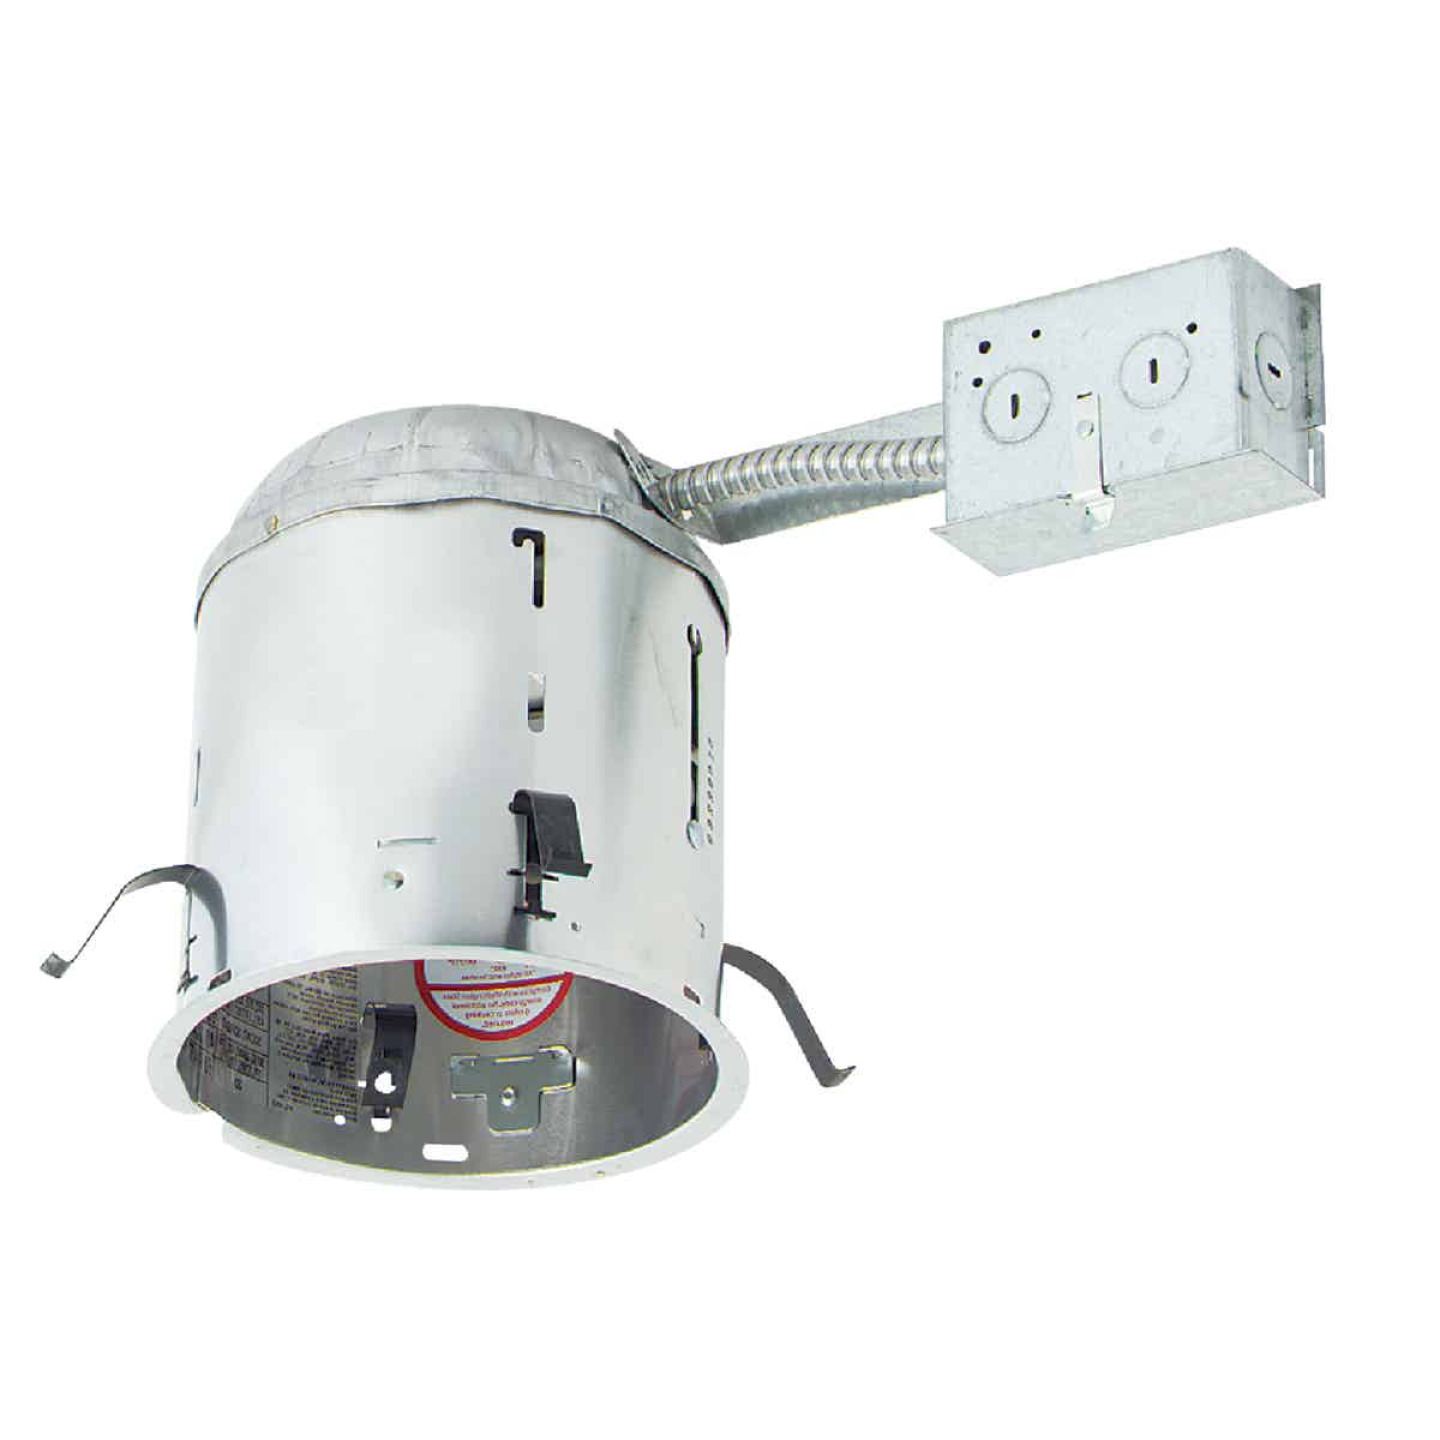 Halo 6 In. Remodel IC Rated Recessed Light Fixture Image 1